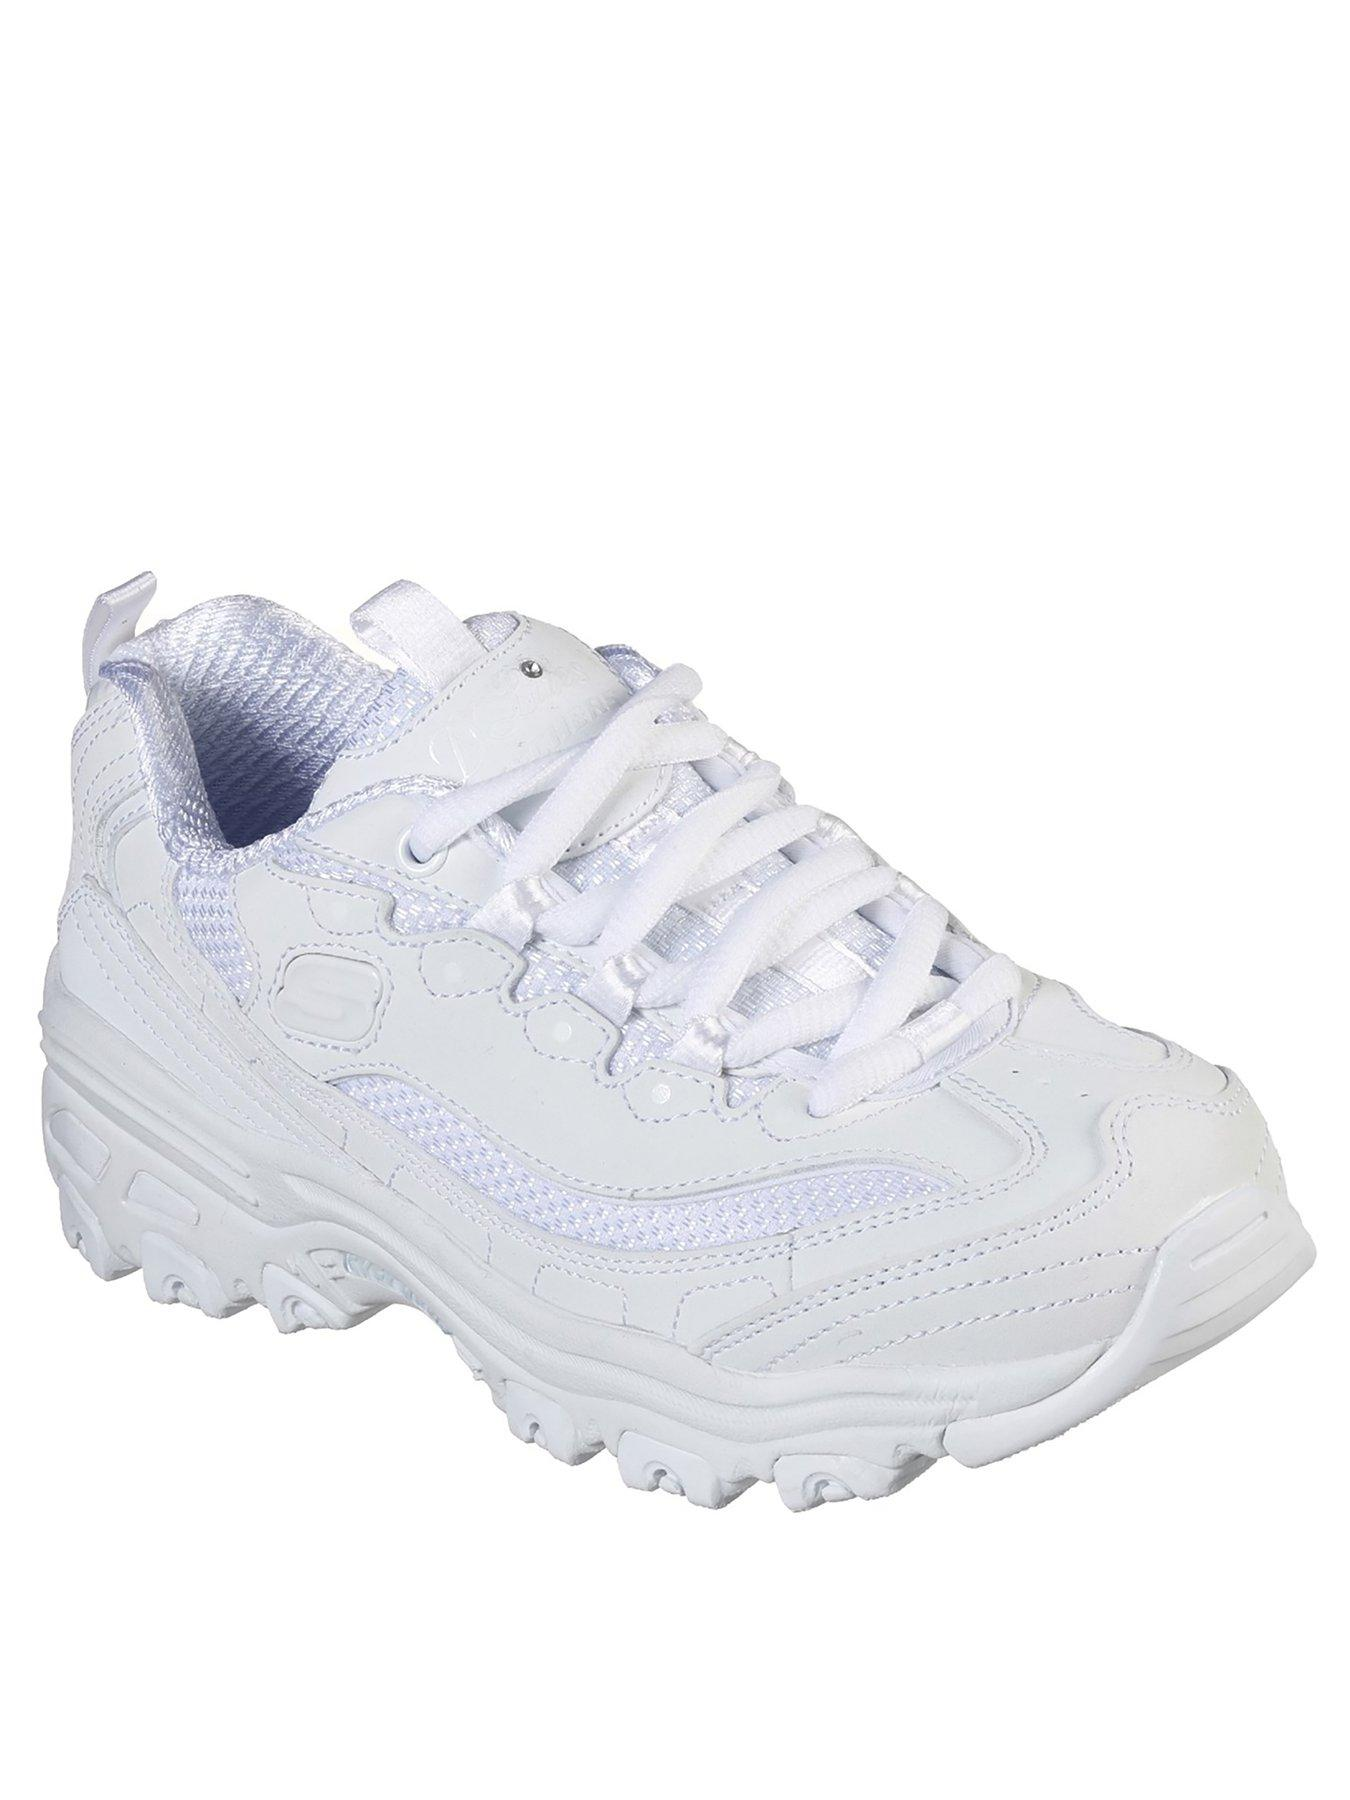 Kids Trainers | Boys trainers | Girls Trainers | Very.co.uk